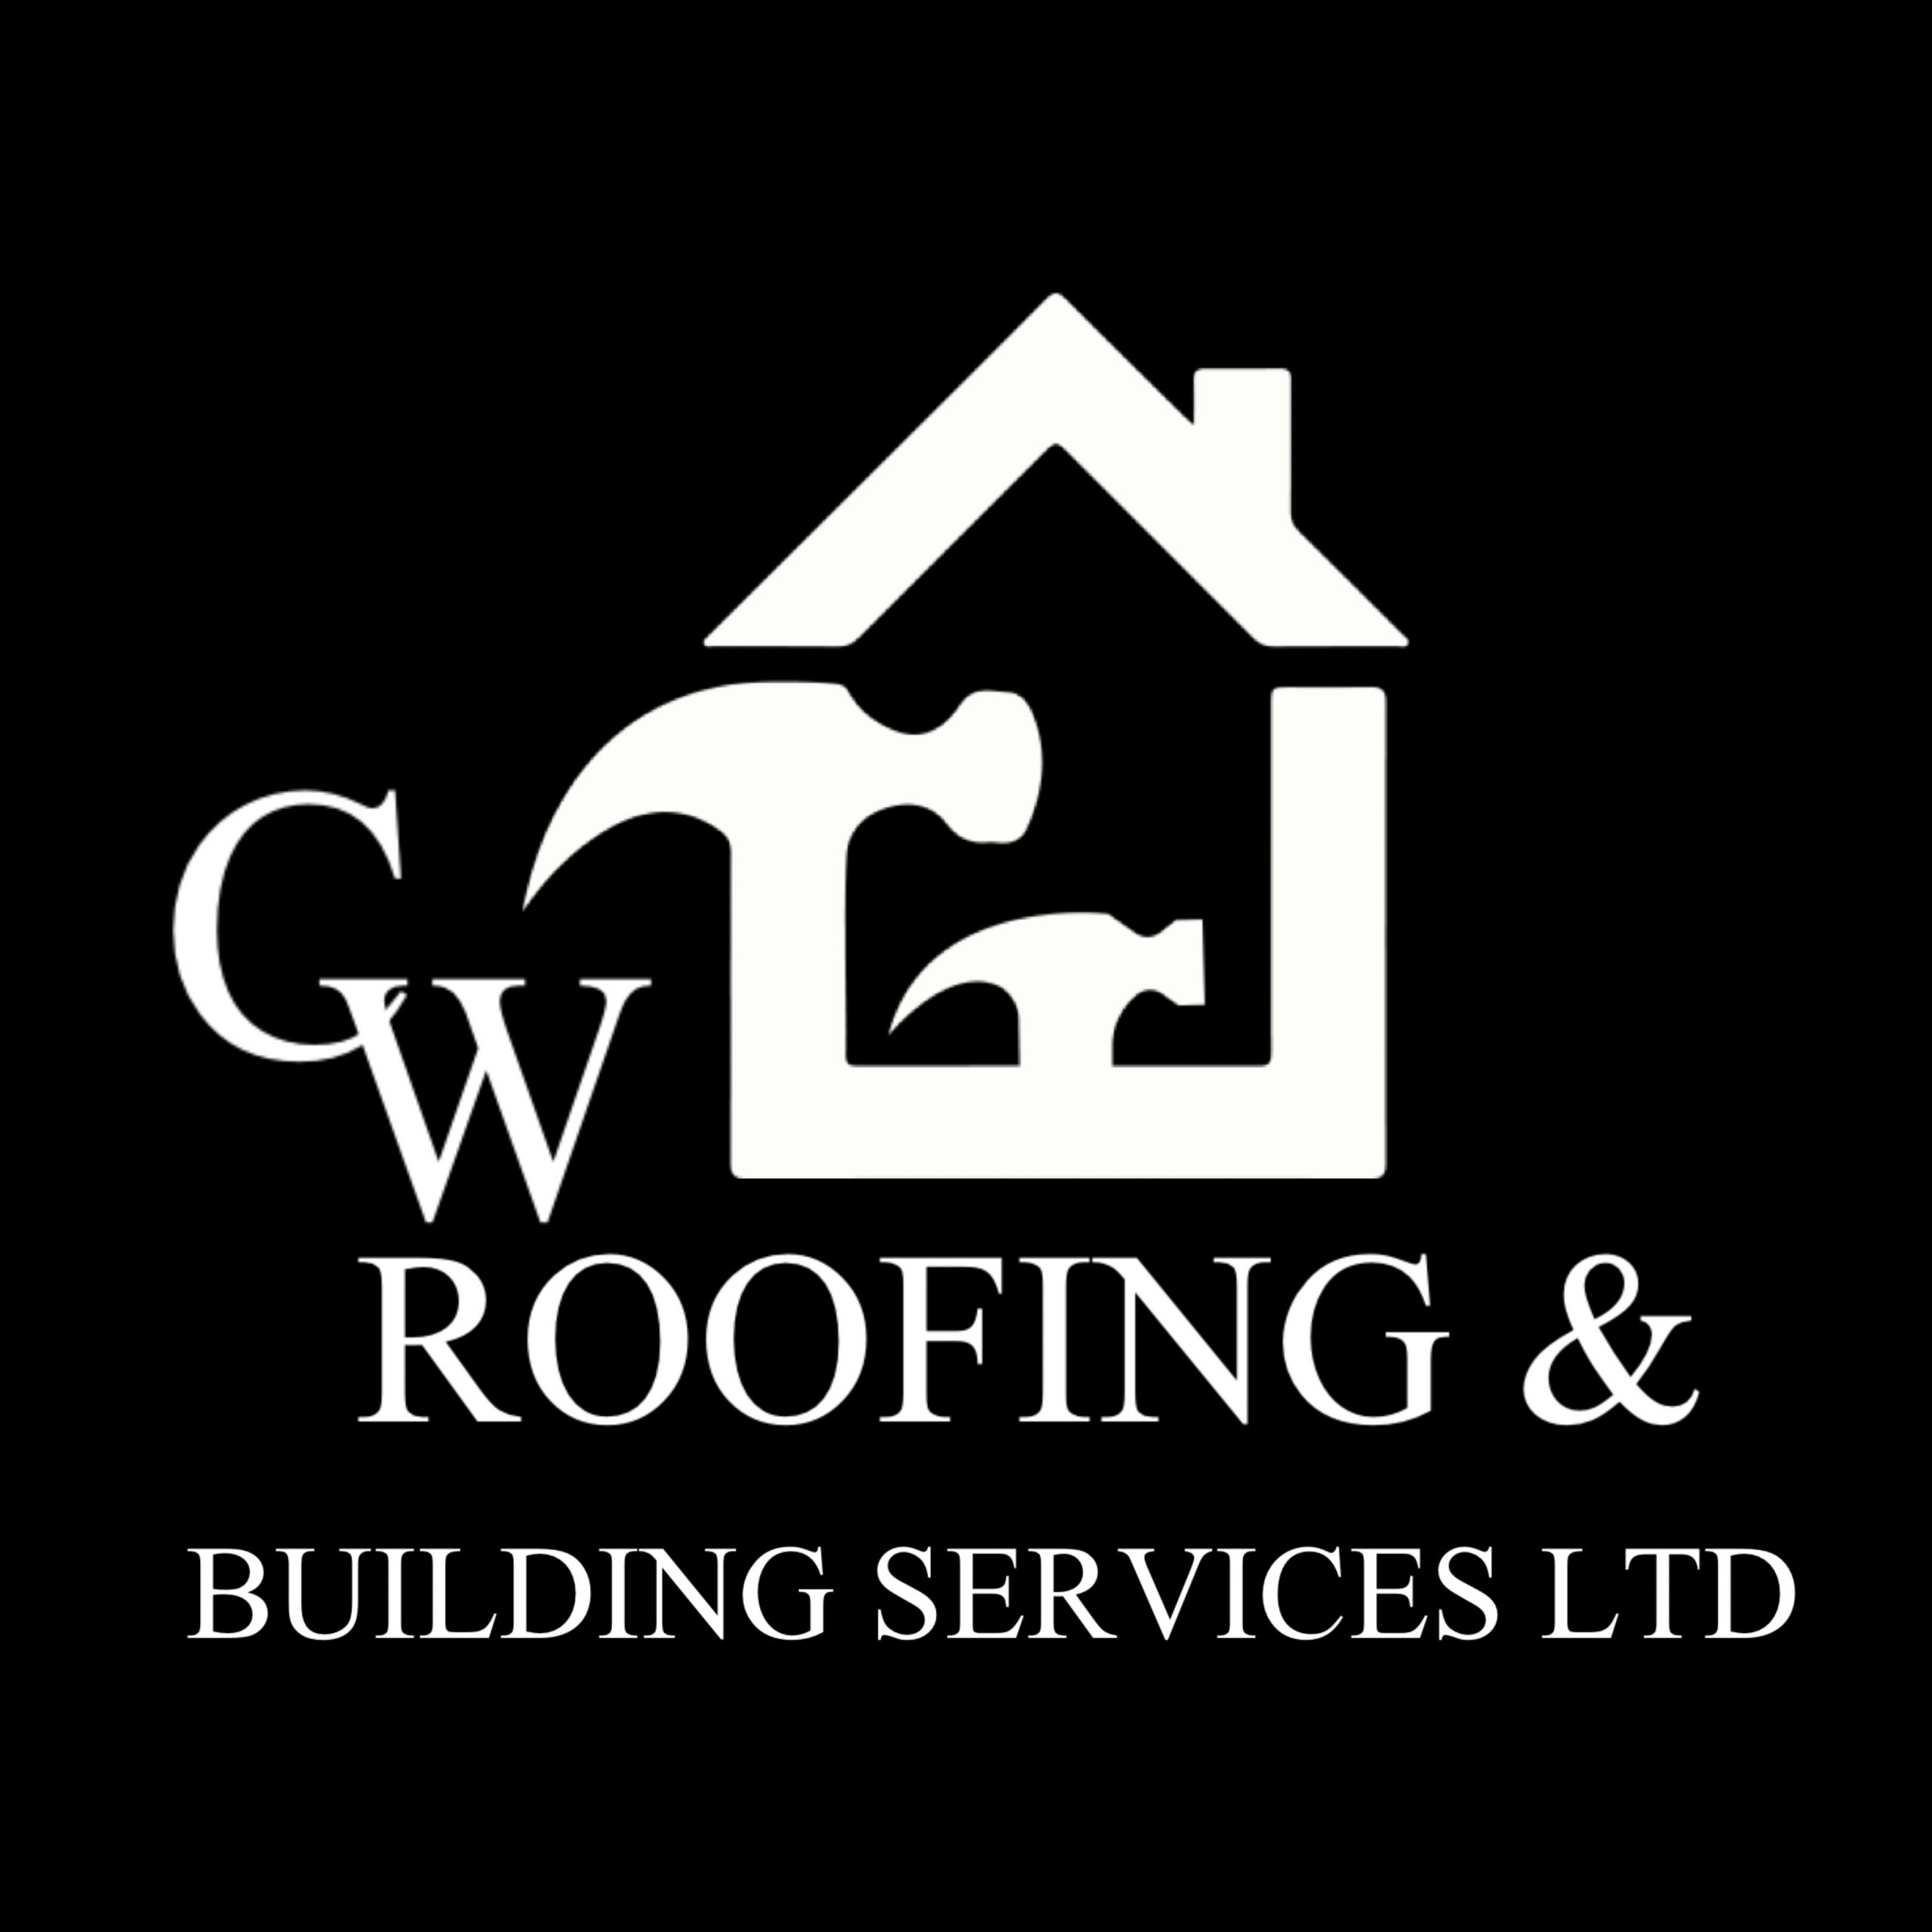 cw roofing and building doncaster